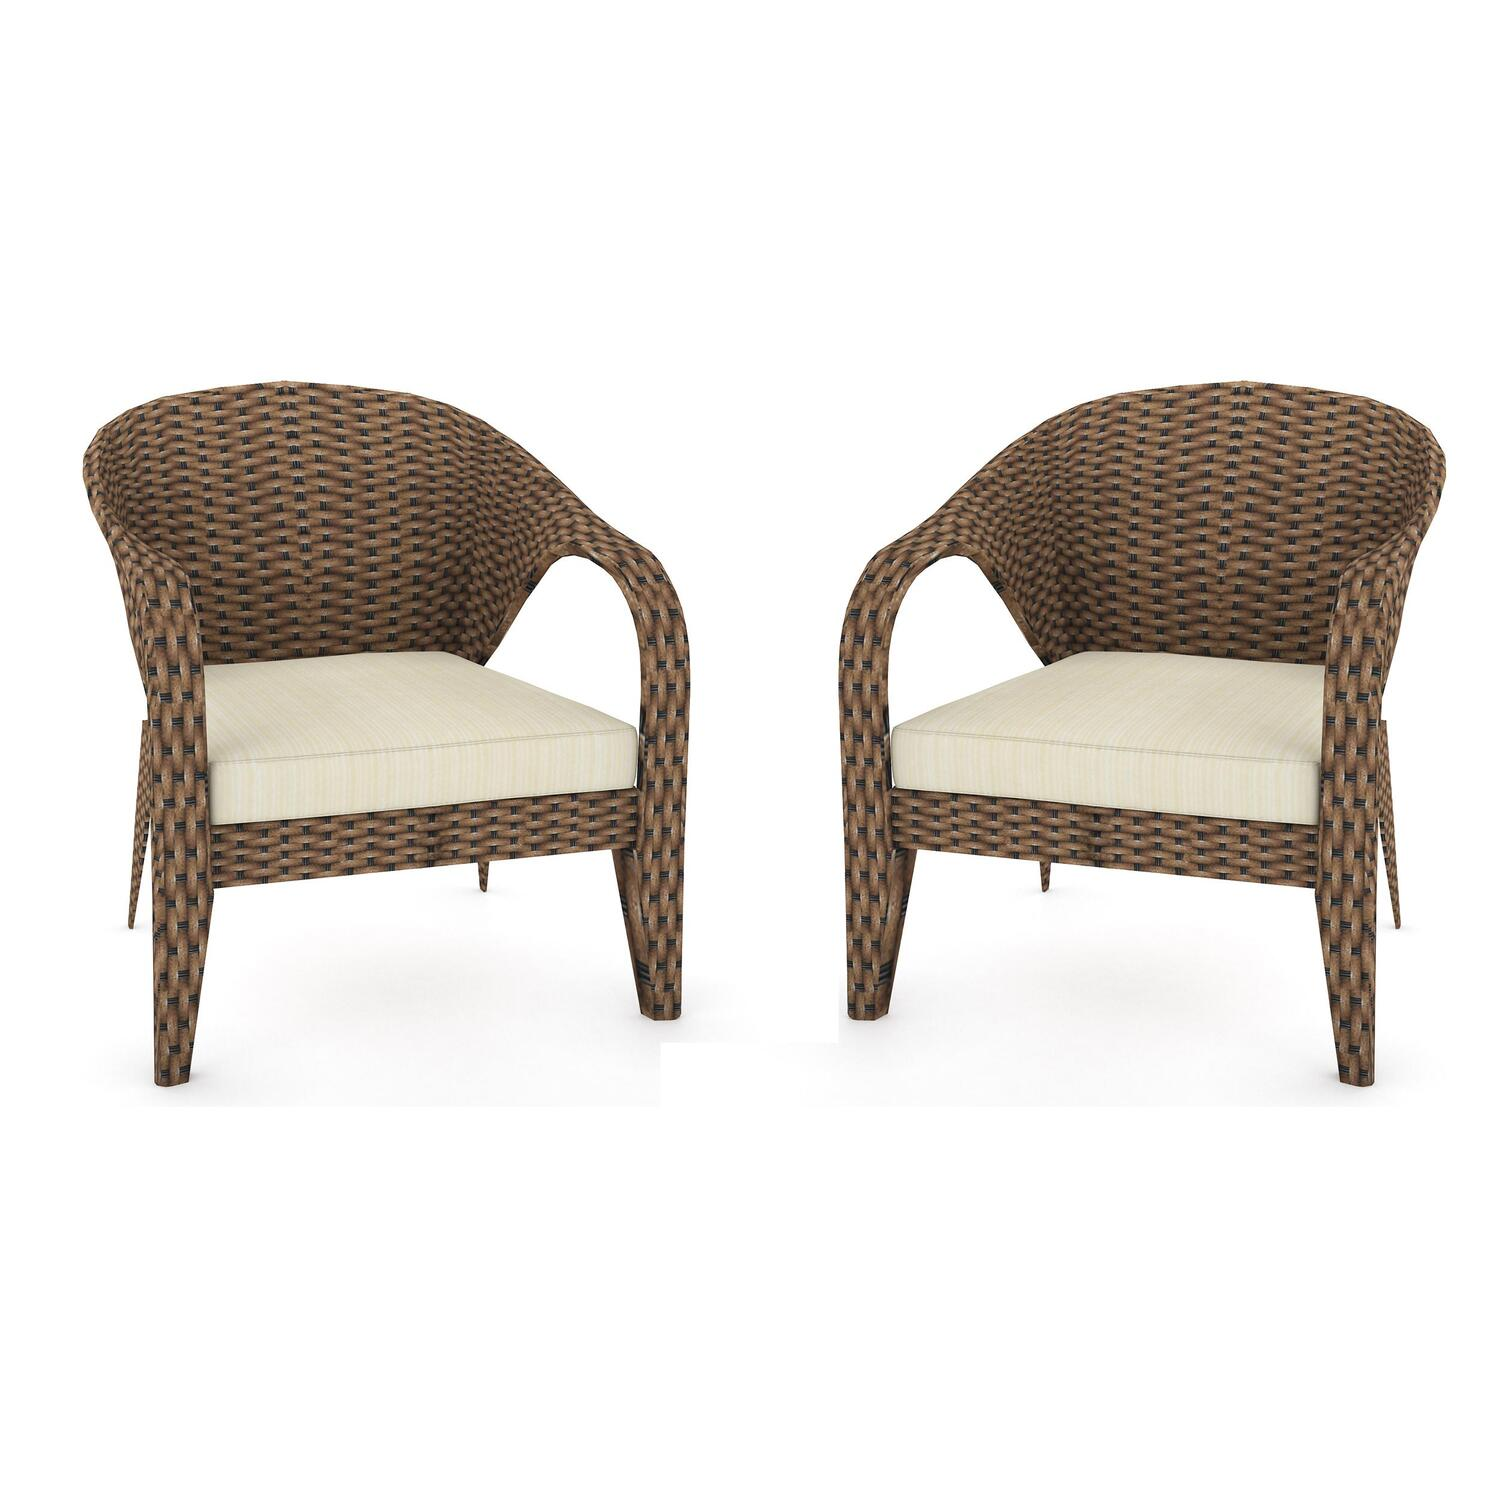 Harrison patio chairs ojcommerce for I furniture outdoor furniture